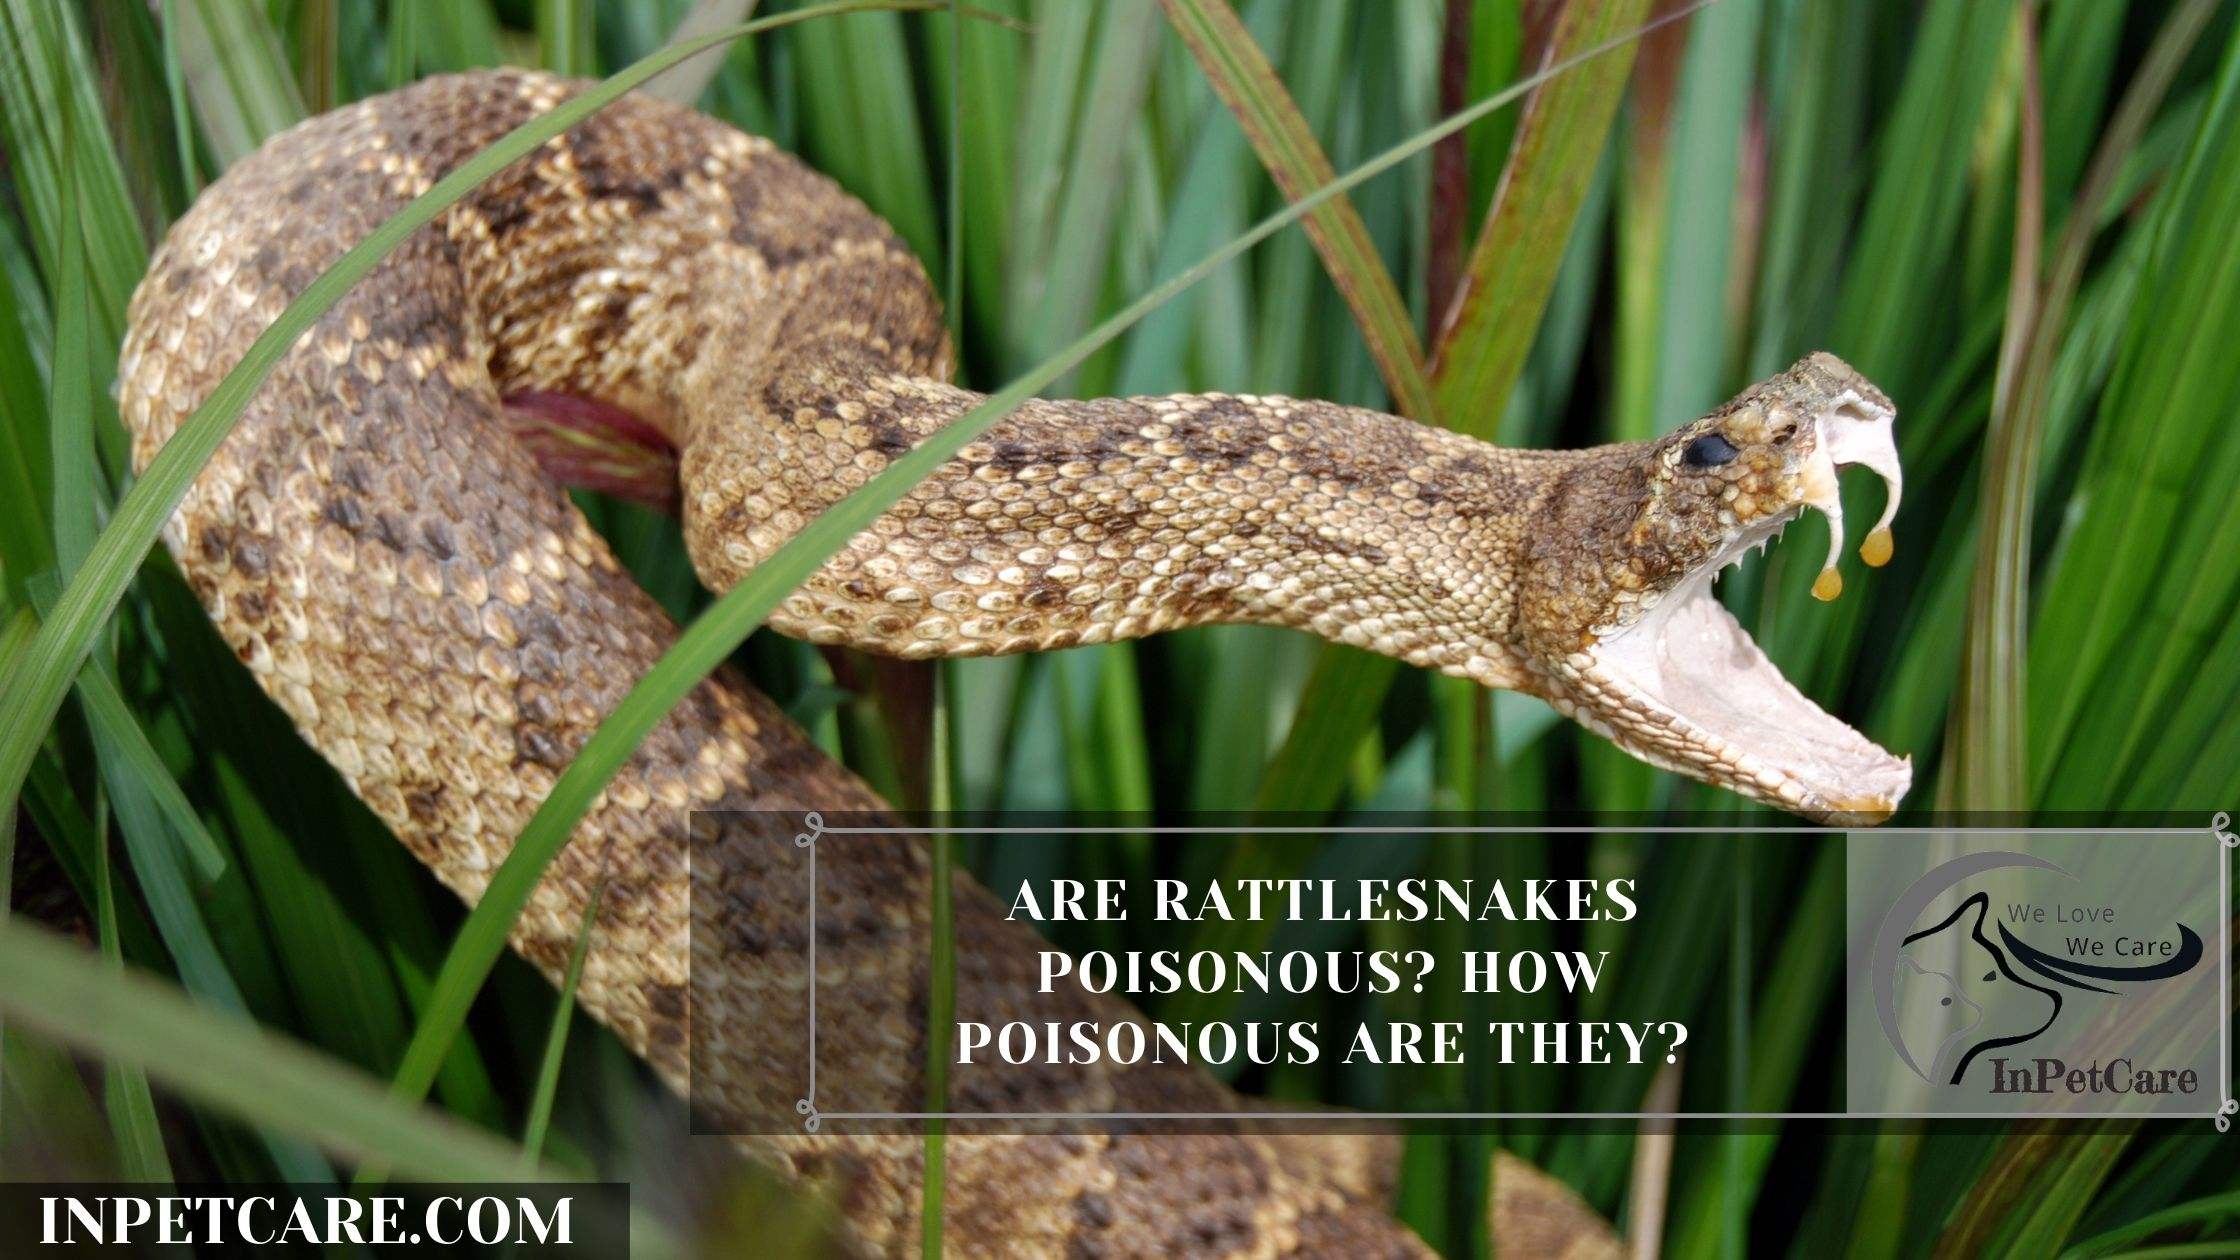 Are Rattlesnakes Poisonous? How Poisonous Are They?